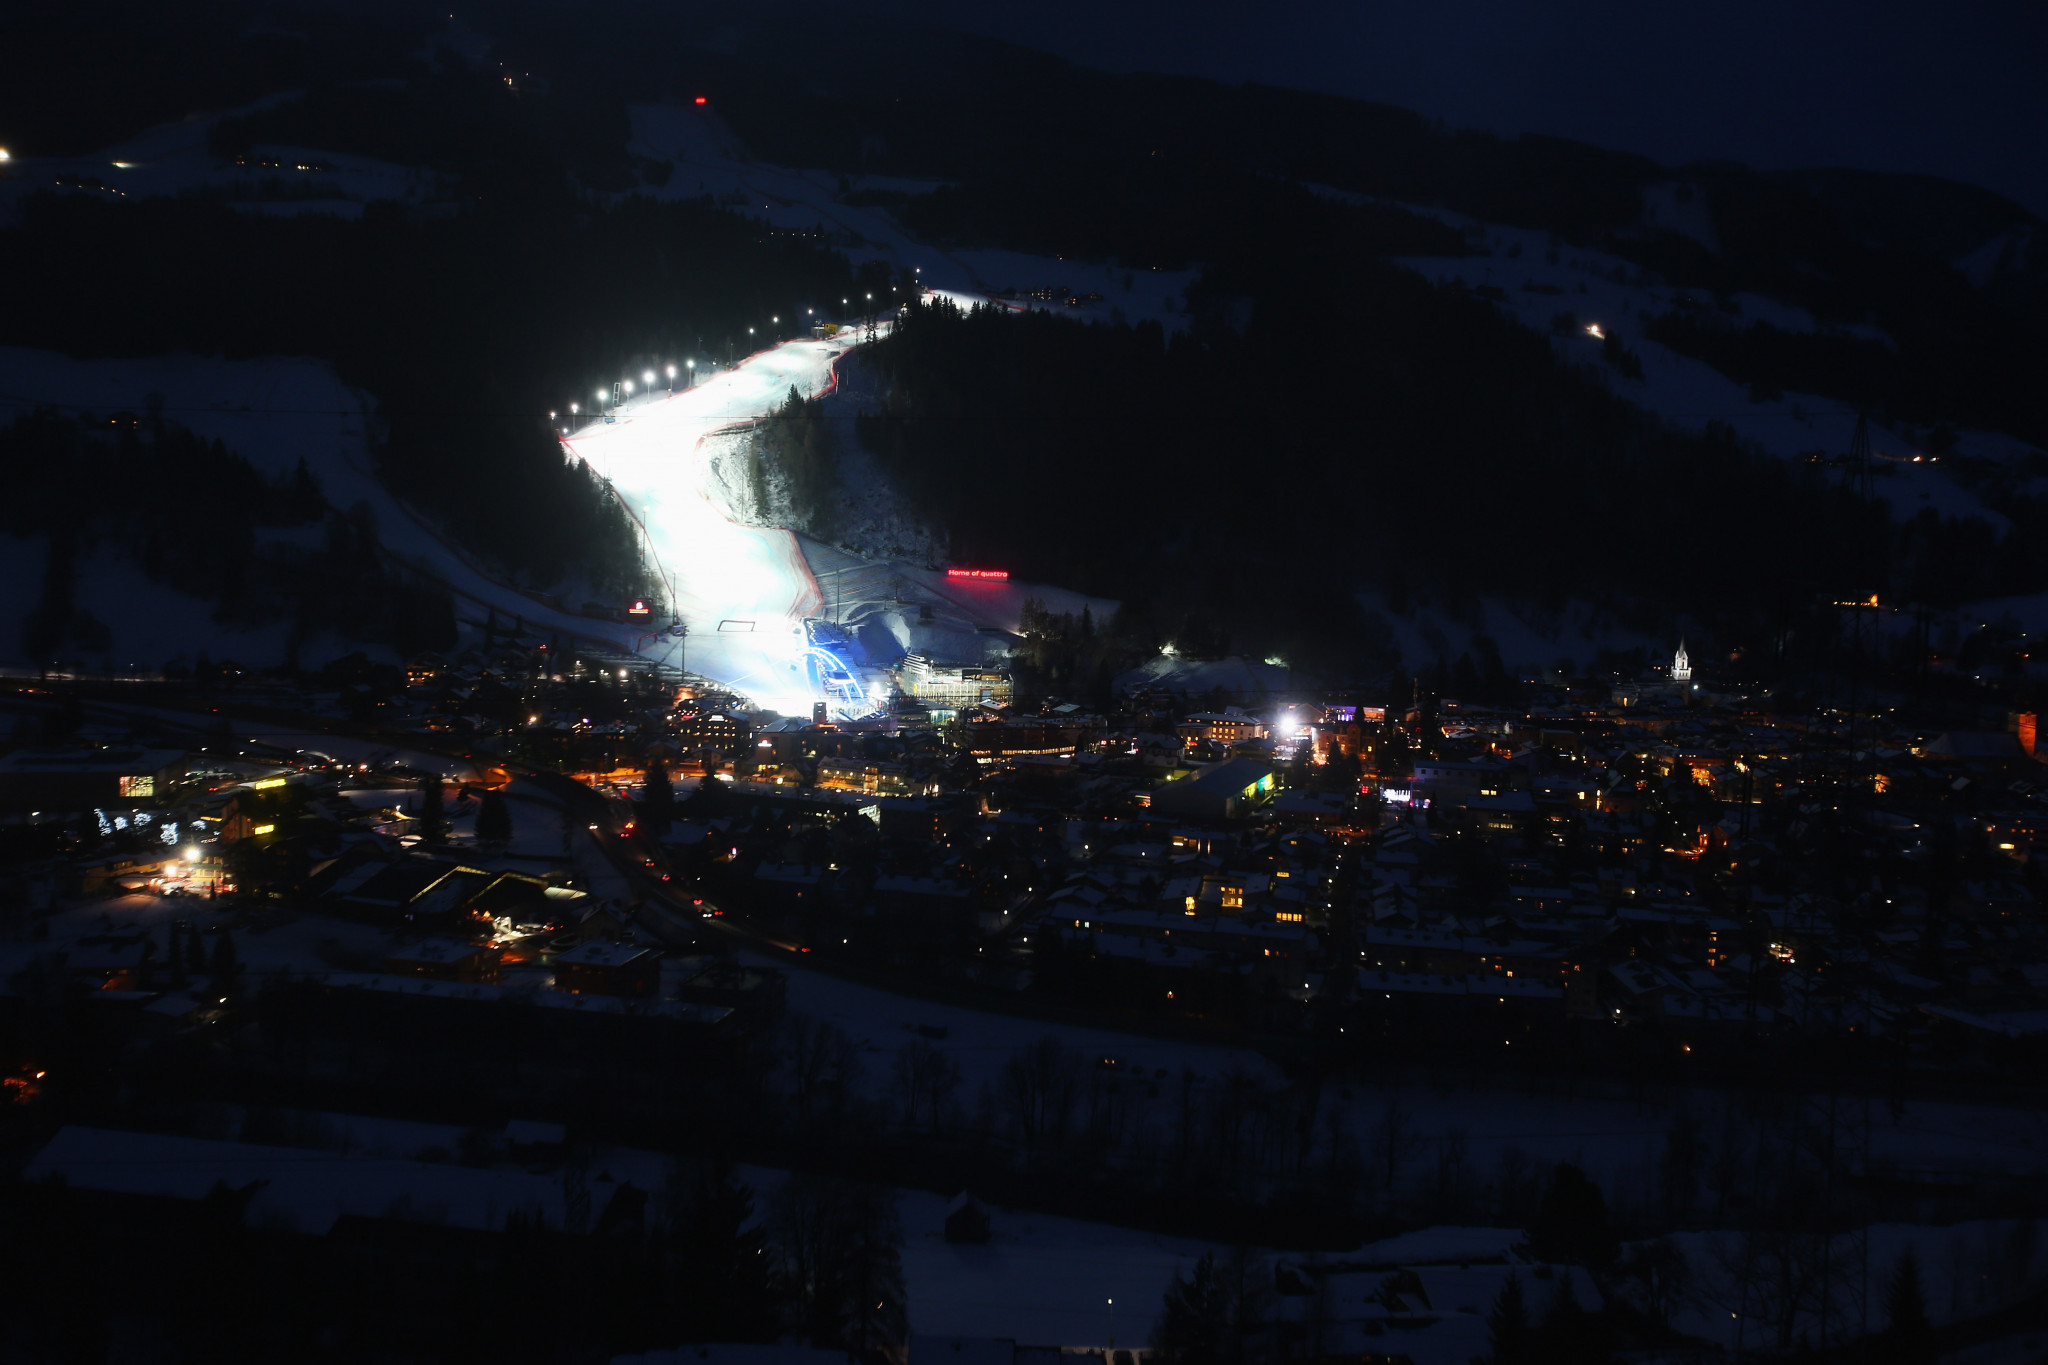 Graz and Schladming considering mounting Austrian 2026 Winter Olympic bid